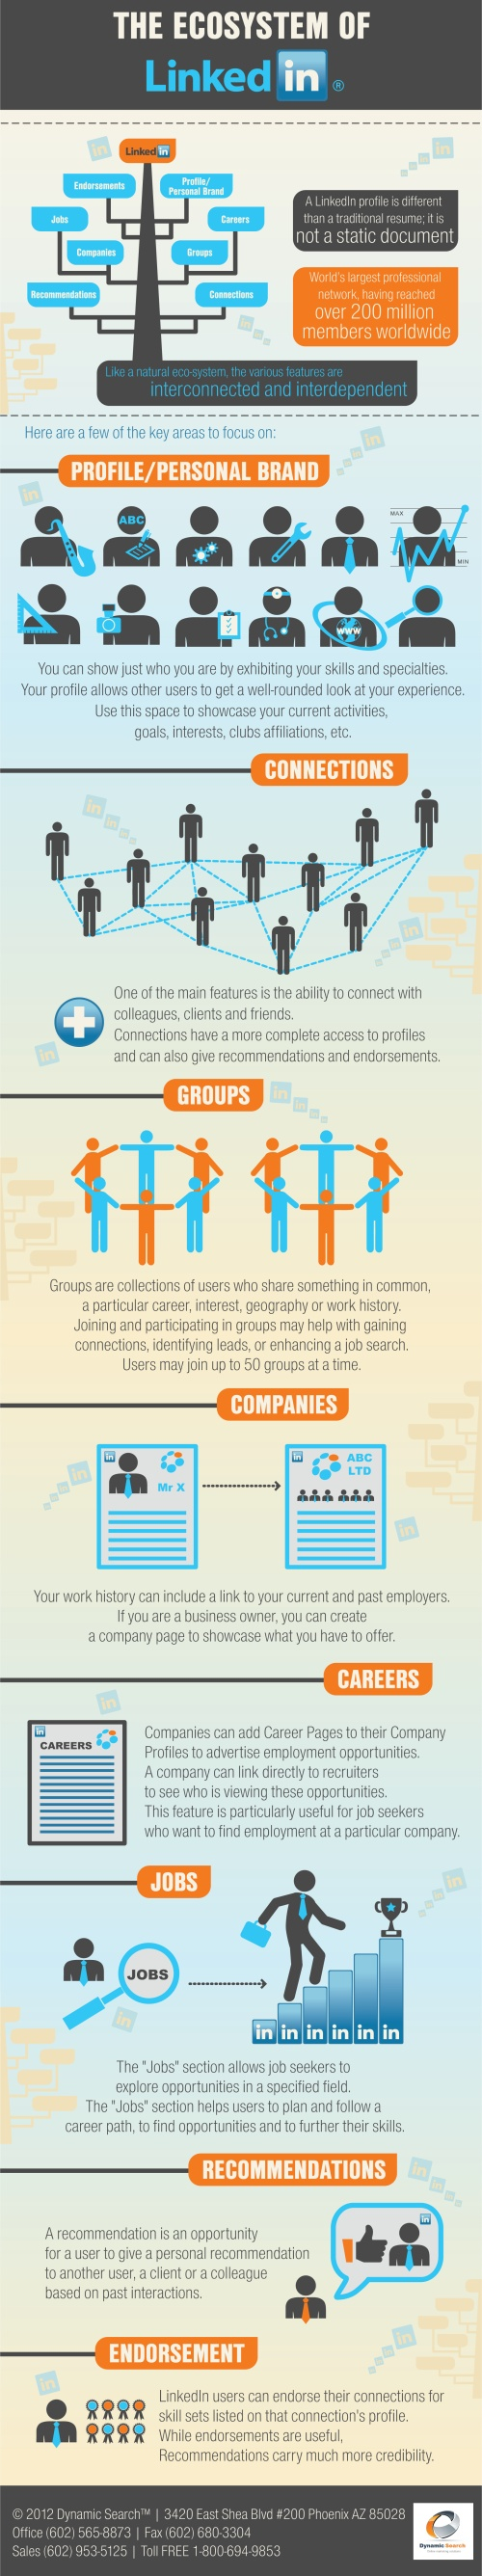 How LinkedIn Works: The Ecosystem